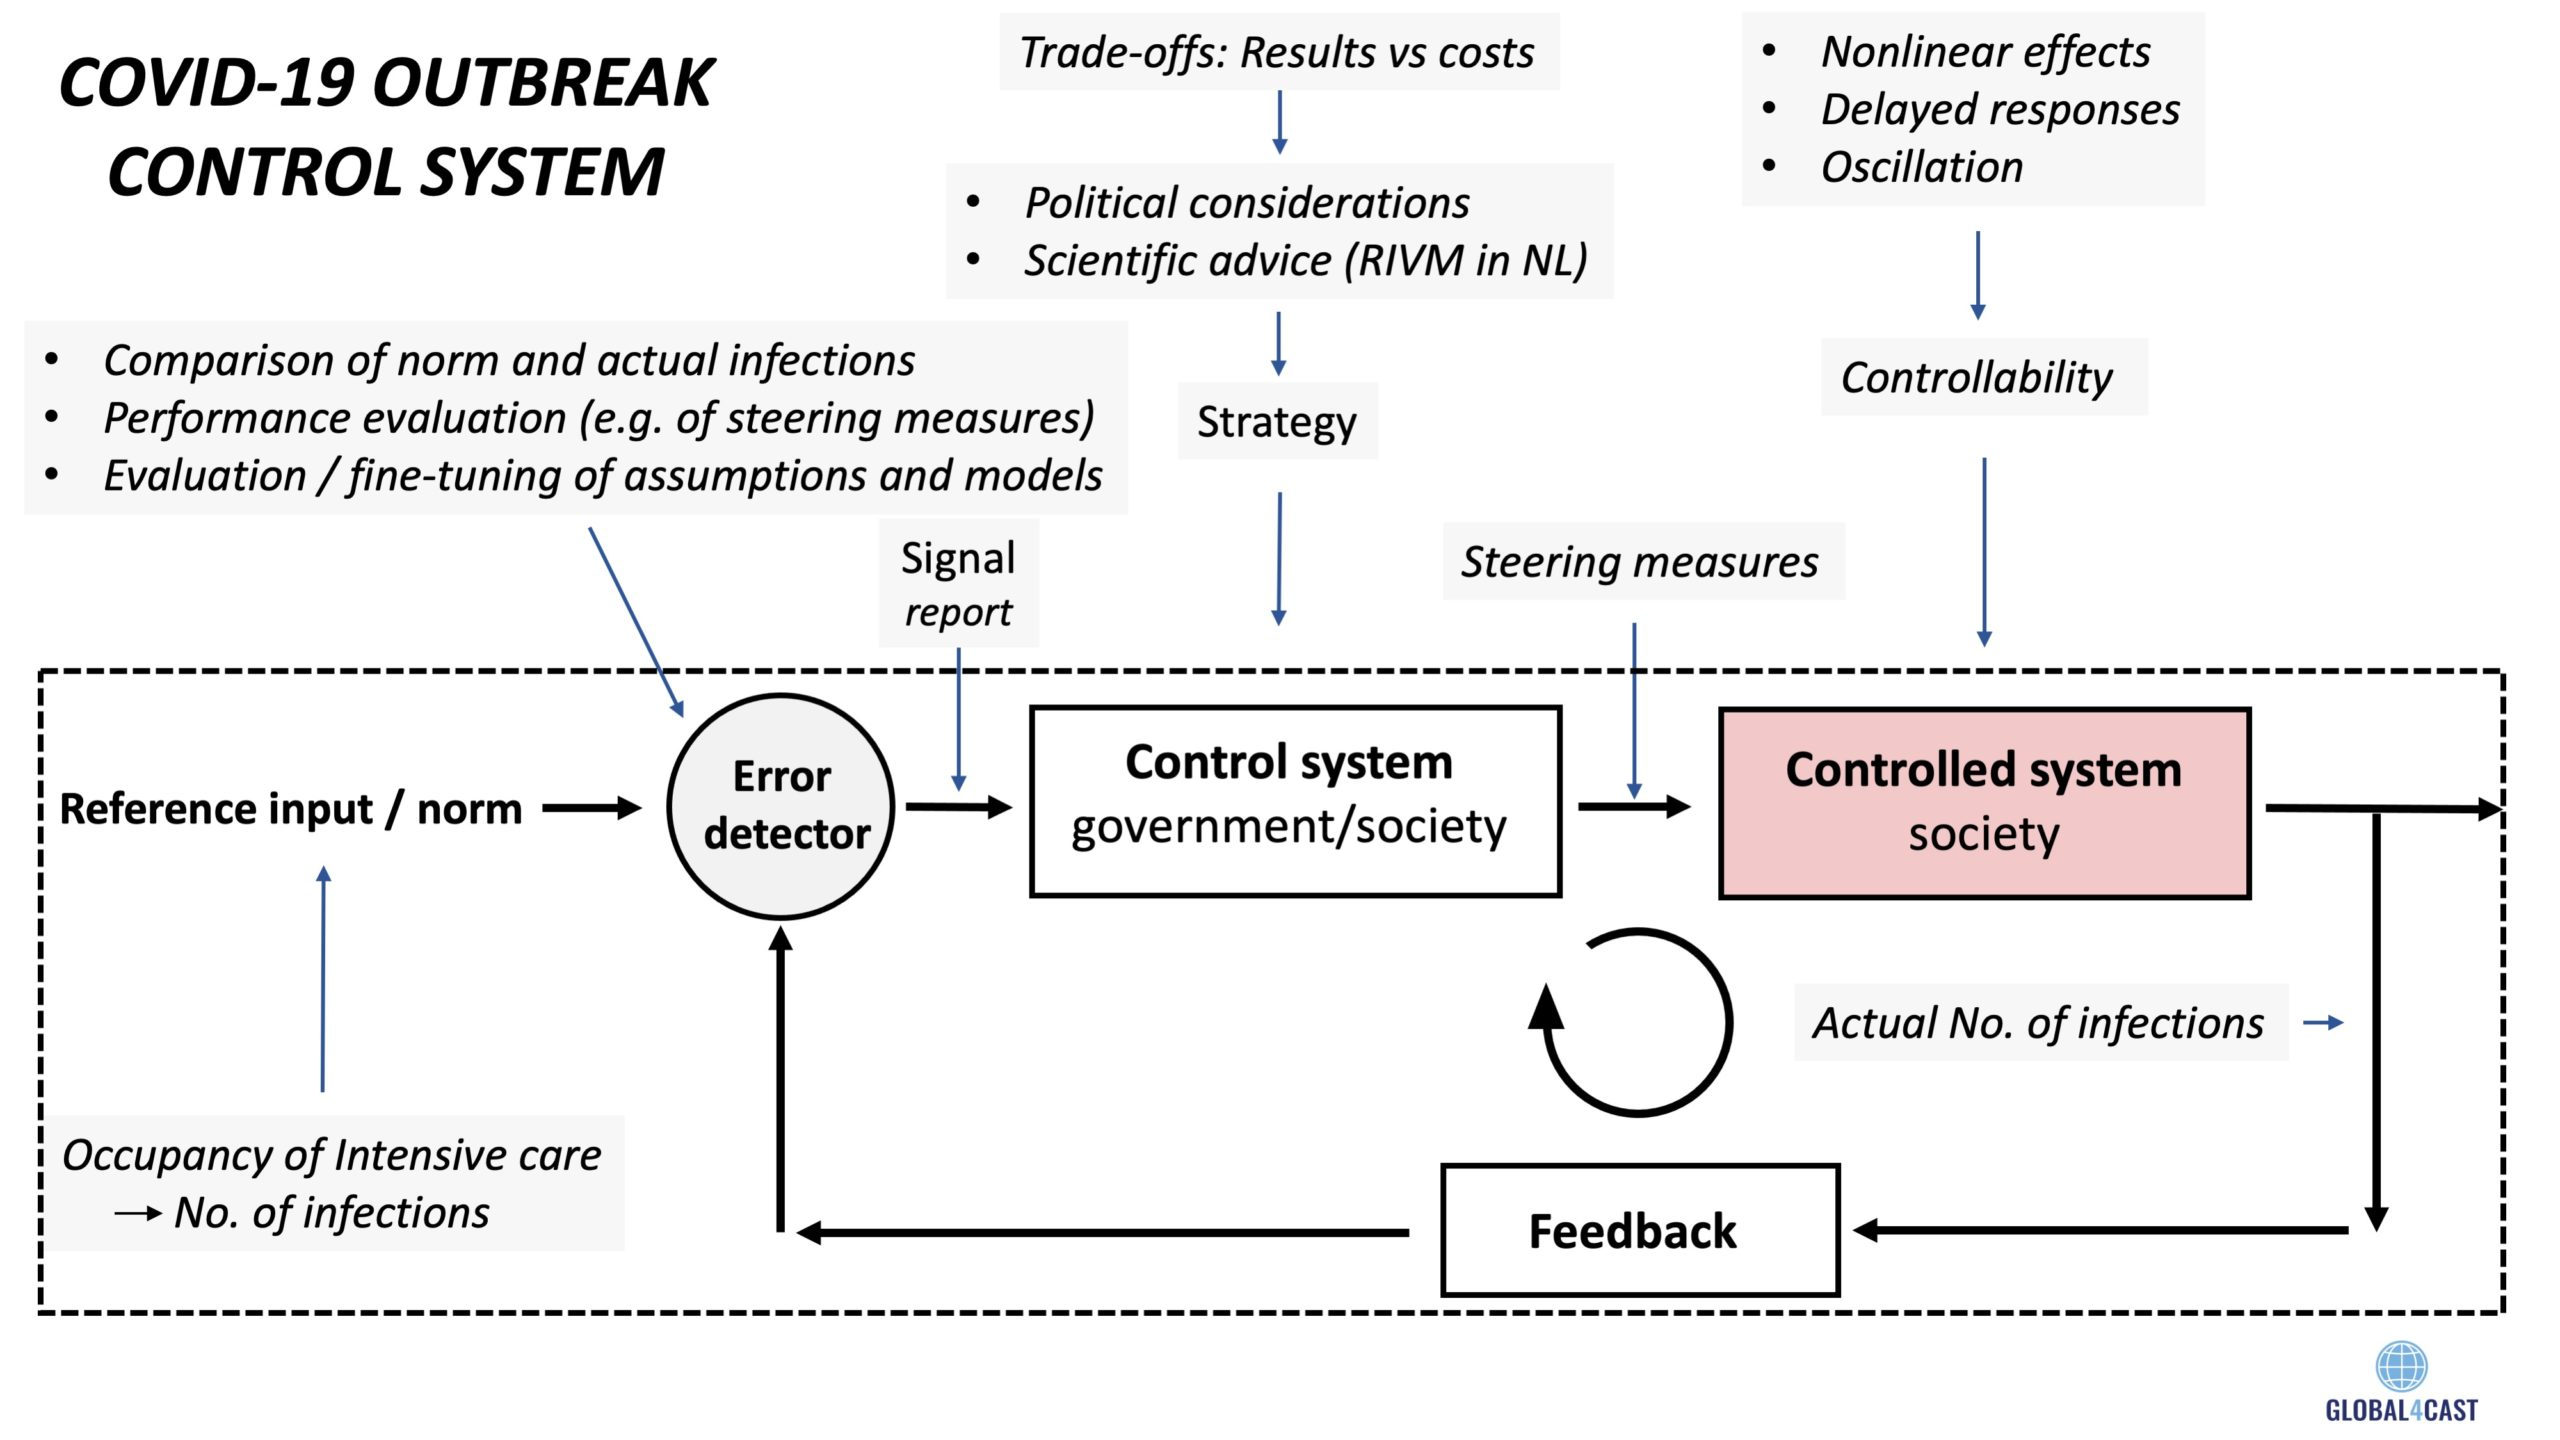 A Simple Coronavirus Outbreak Management System